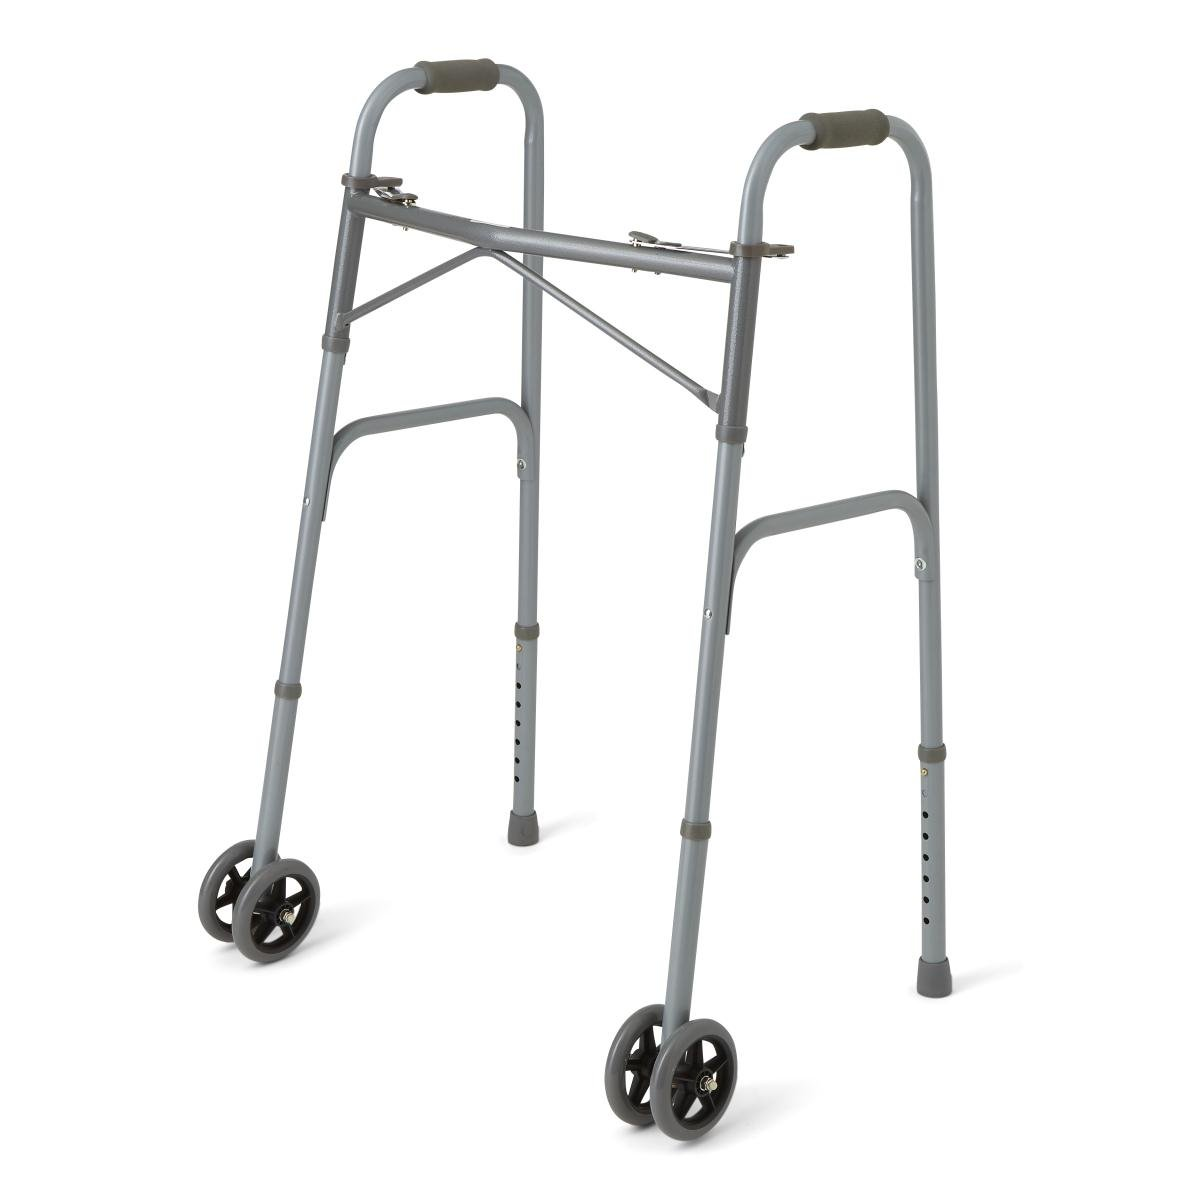 Guardian Heavy Duty Bariatric Extra Wide Folding Walker wtih 5'' Wheels, Supports up to 600 lbs, Comfort Foam Hand Grips